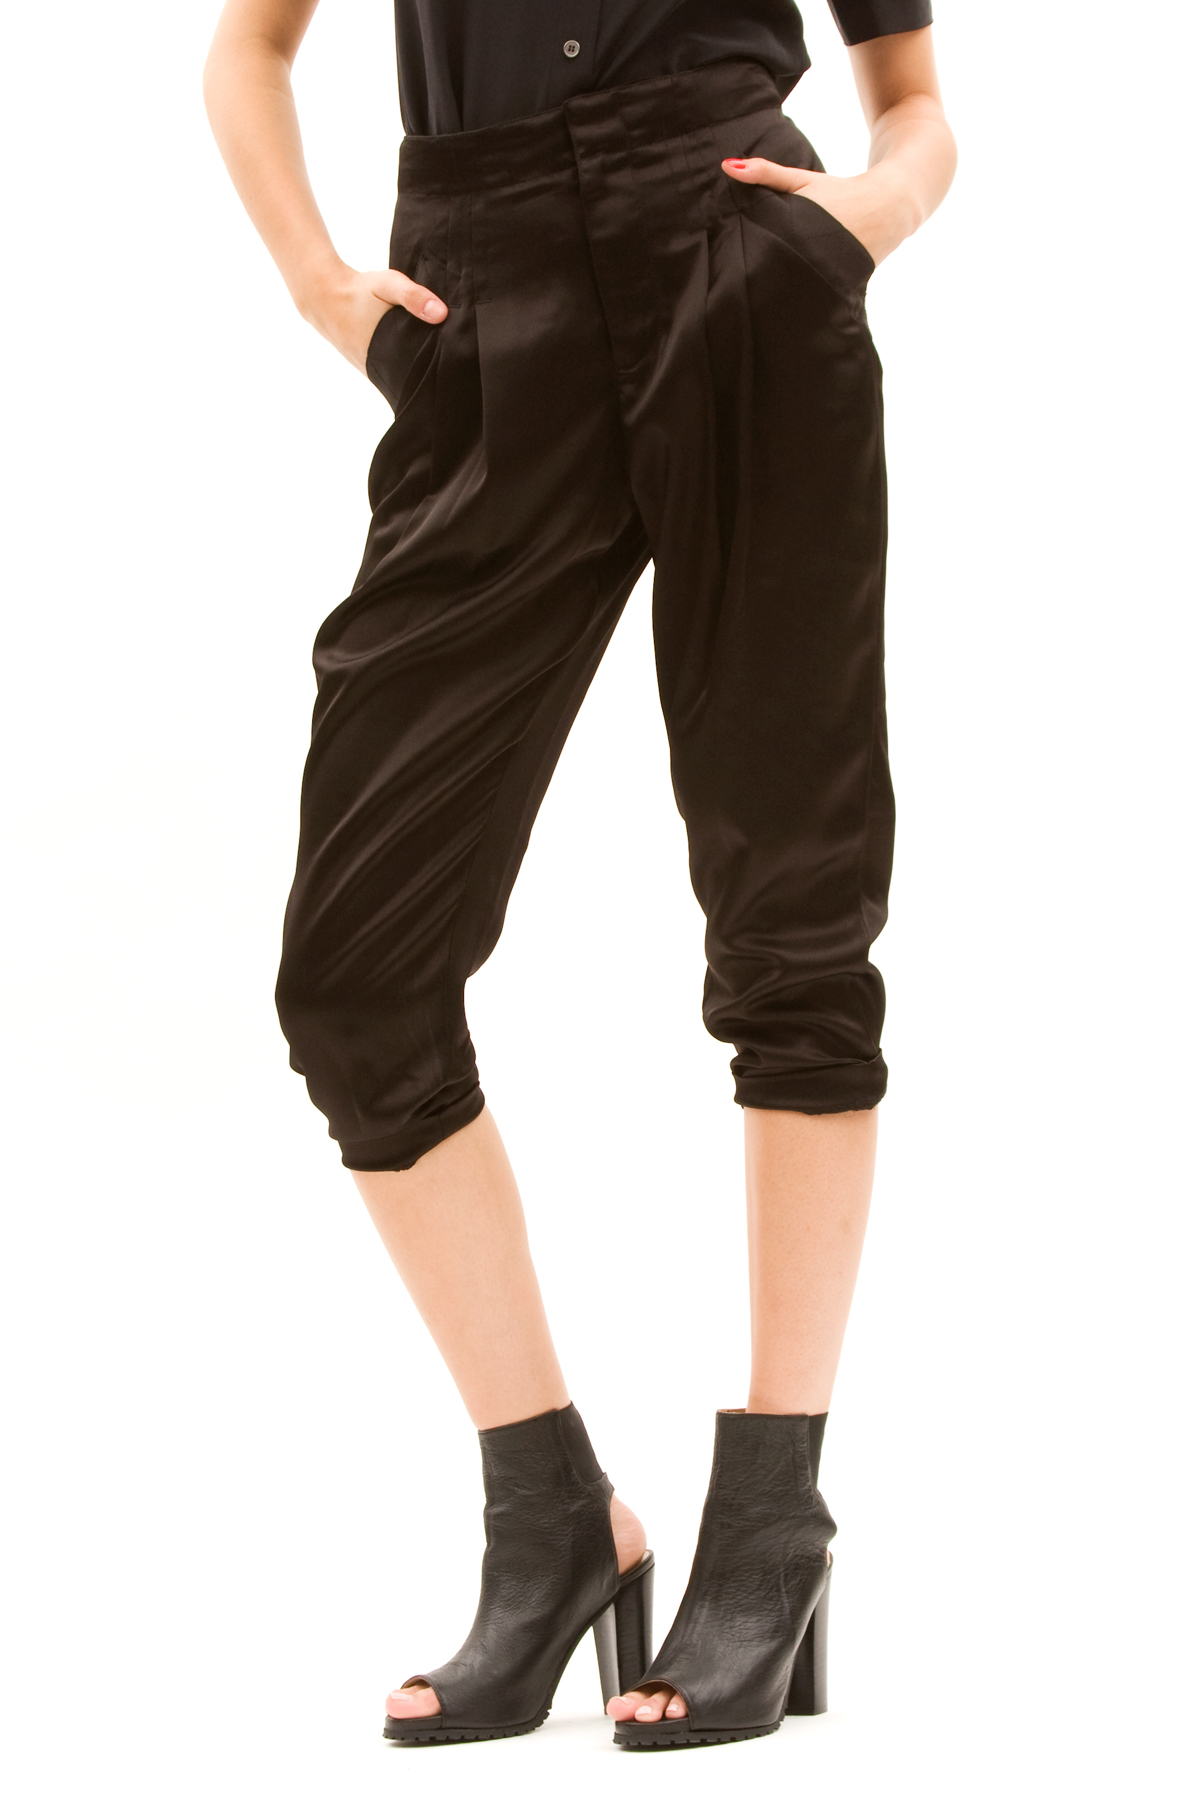 Lastest High Waist 2014 Cross Pant Drop Crotch Pants Women Baggy Pants Hip Hop